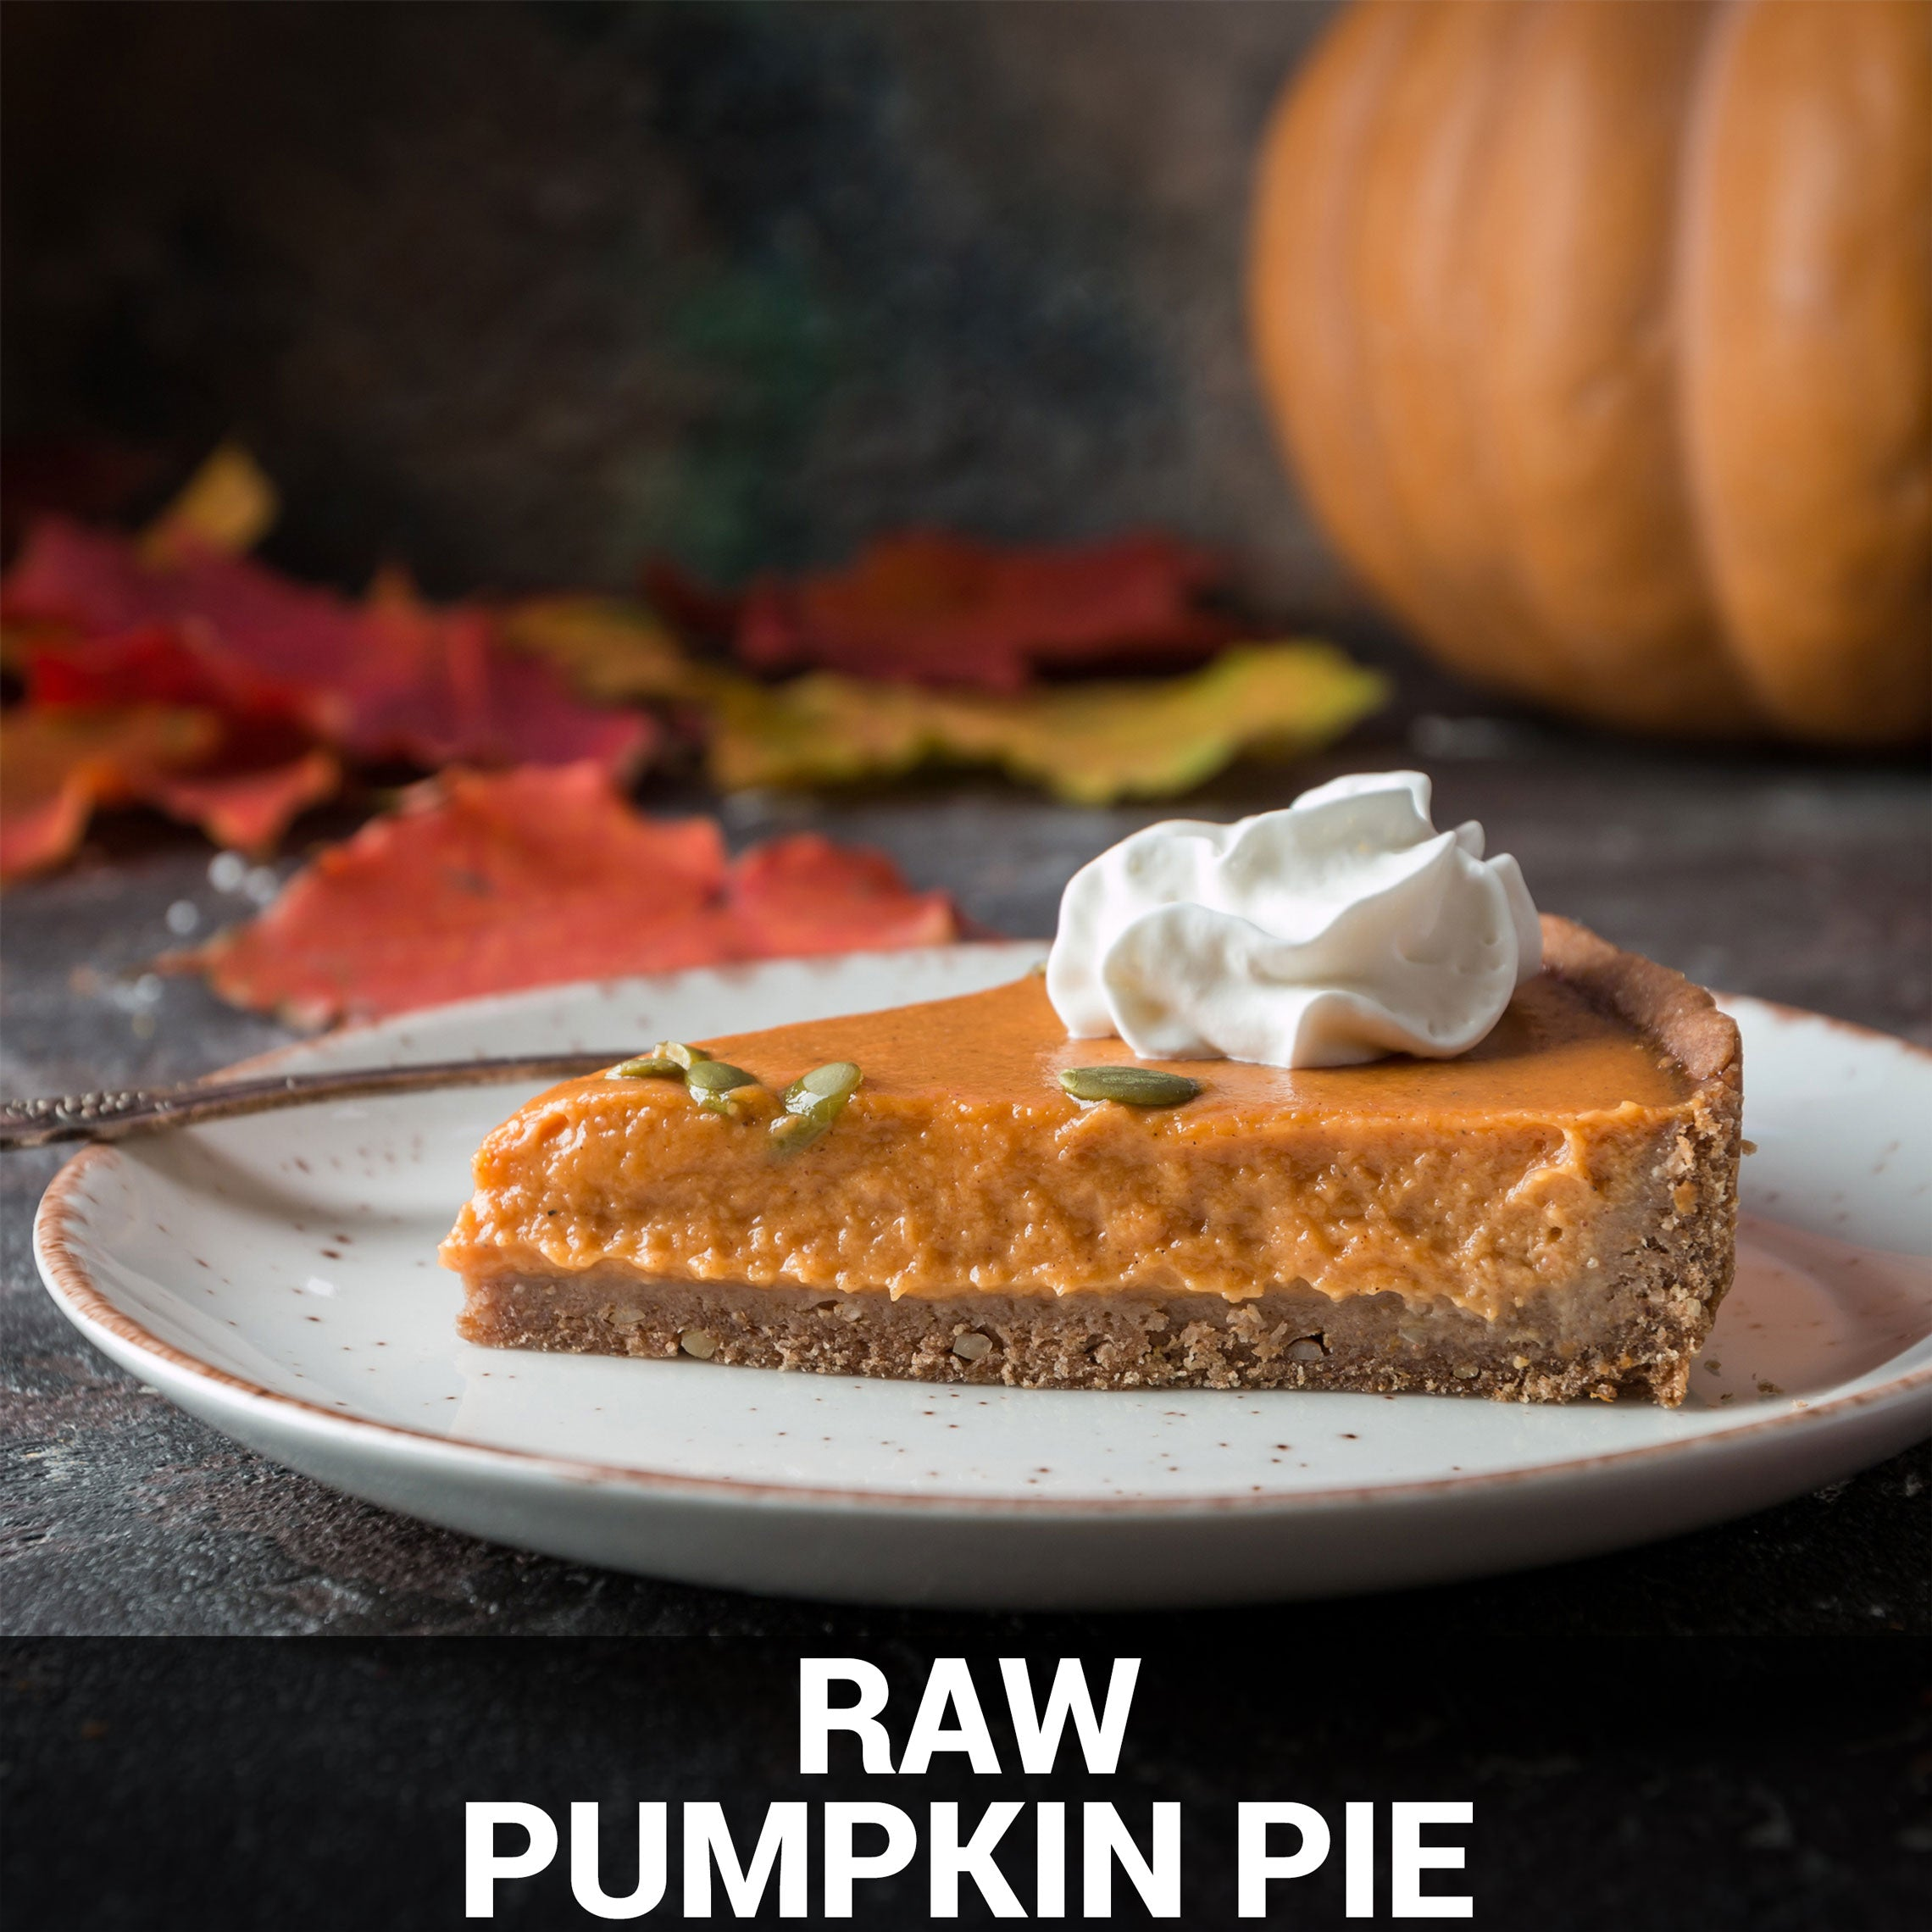 Raw Pumpkin Pie Recipes Recipe - Foods Alive